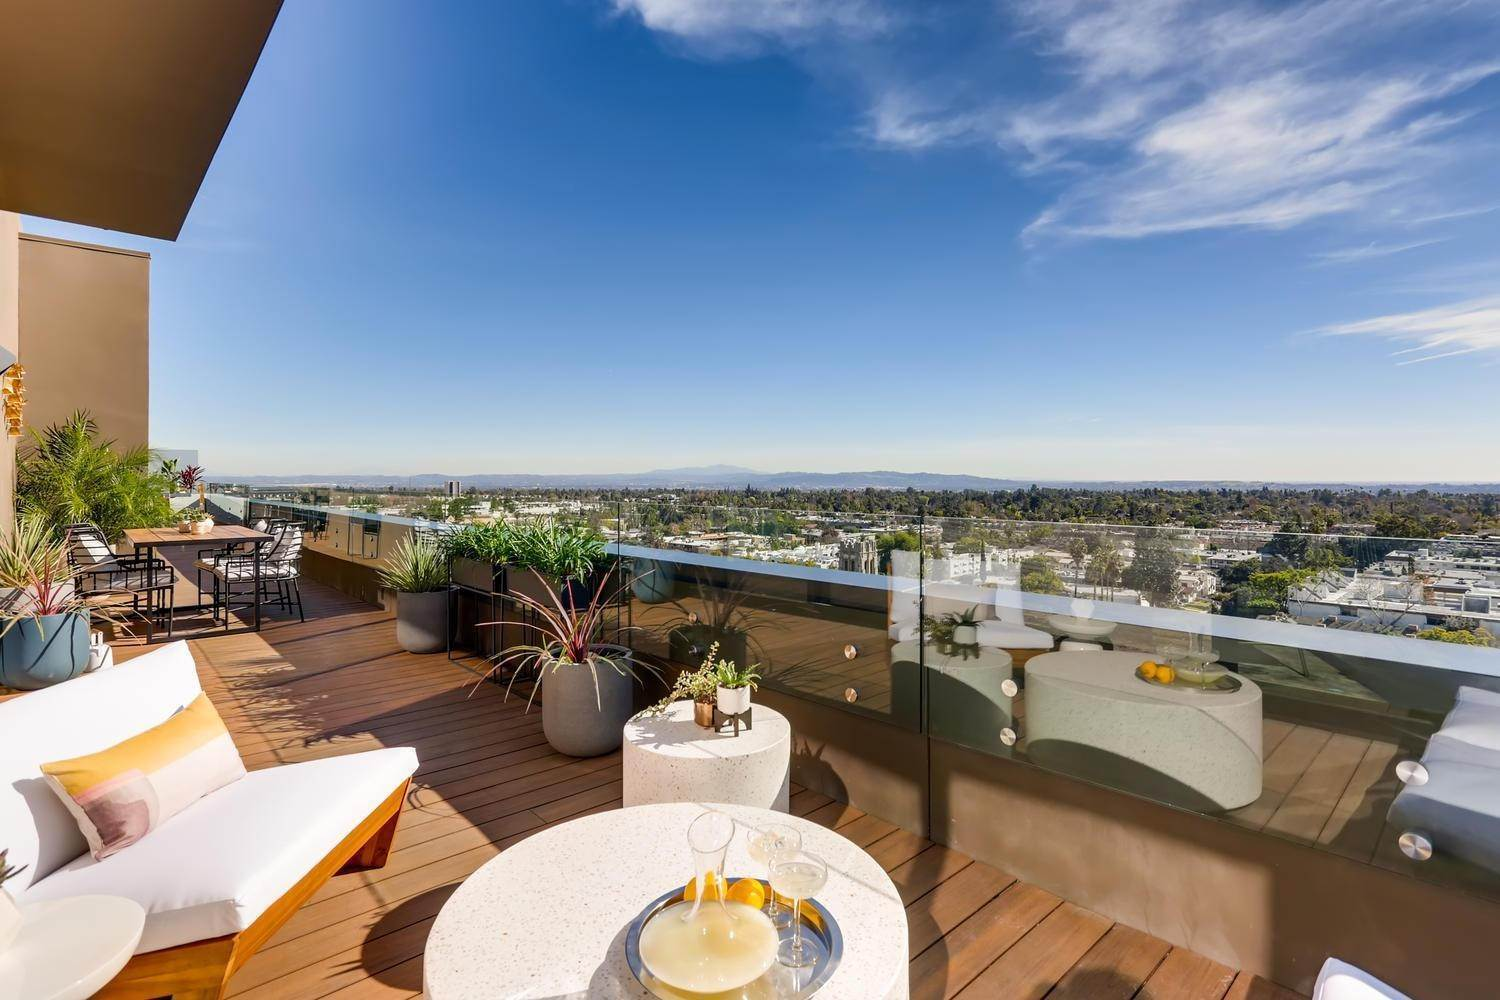 Multi Family for Sale at Penthouse 6 Unit Ph6 PASADENA, CALIFORNIA 91101 UNITED STATES